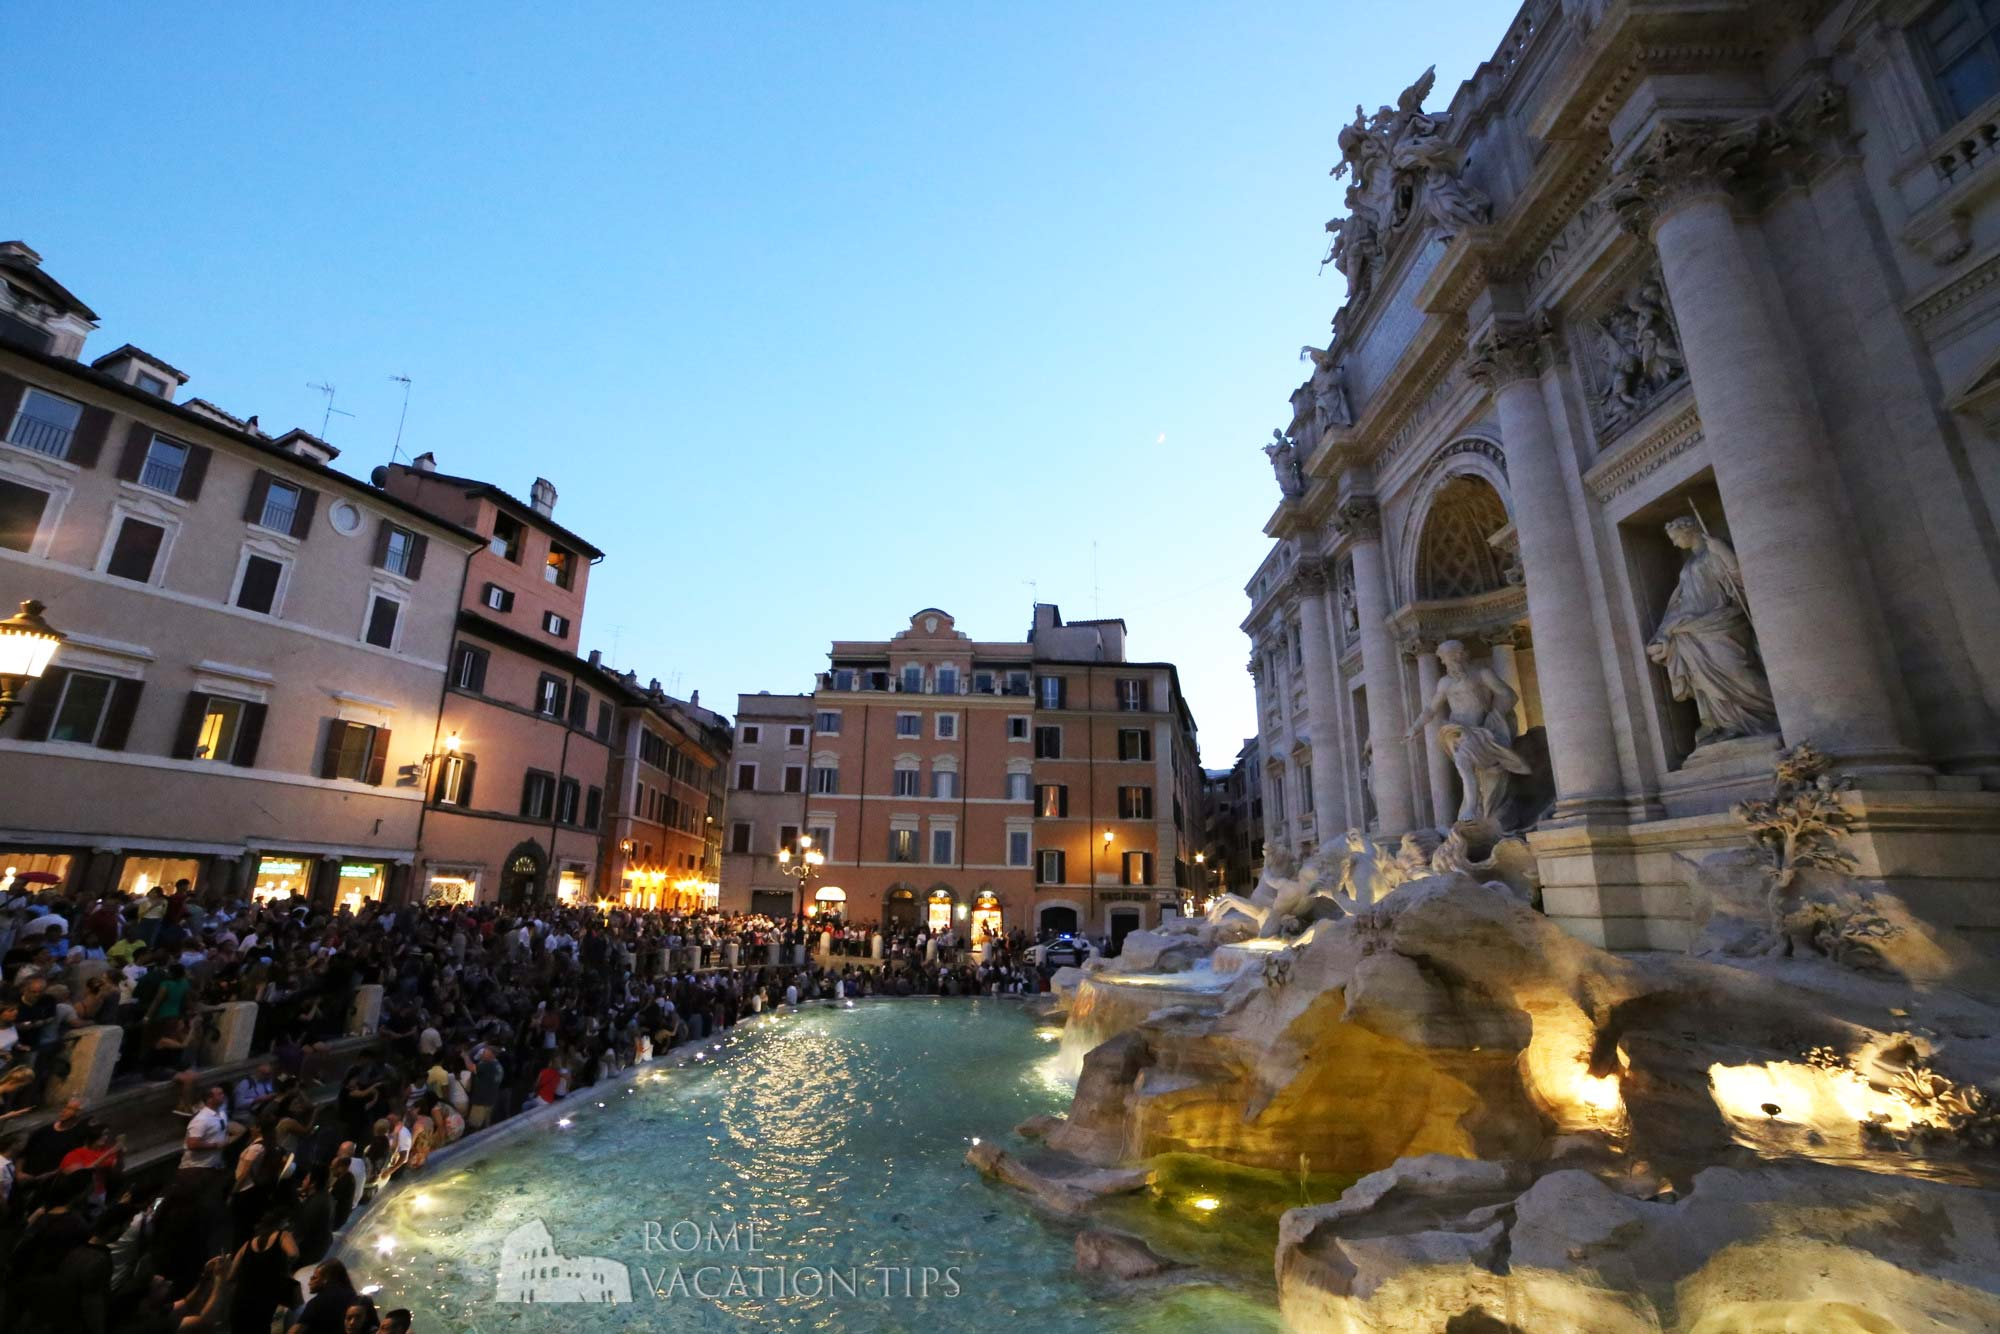 """Rome to erect """"no sitting"""" barrier around the Trevi fountain"""